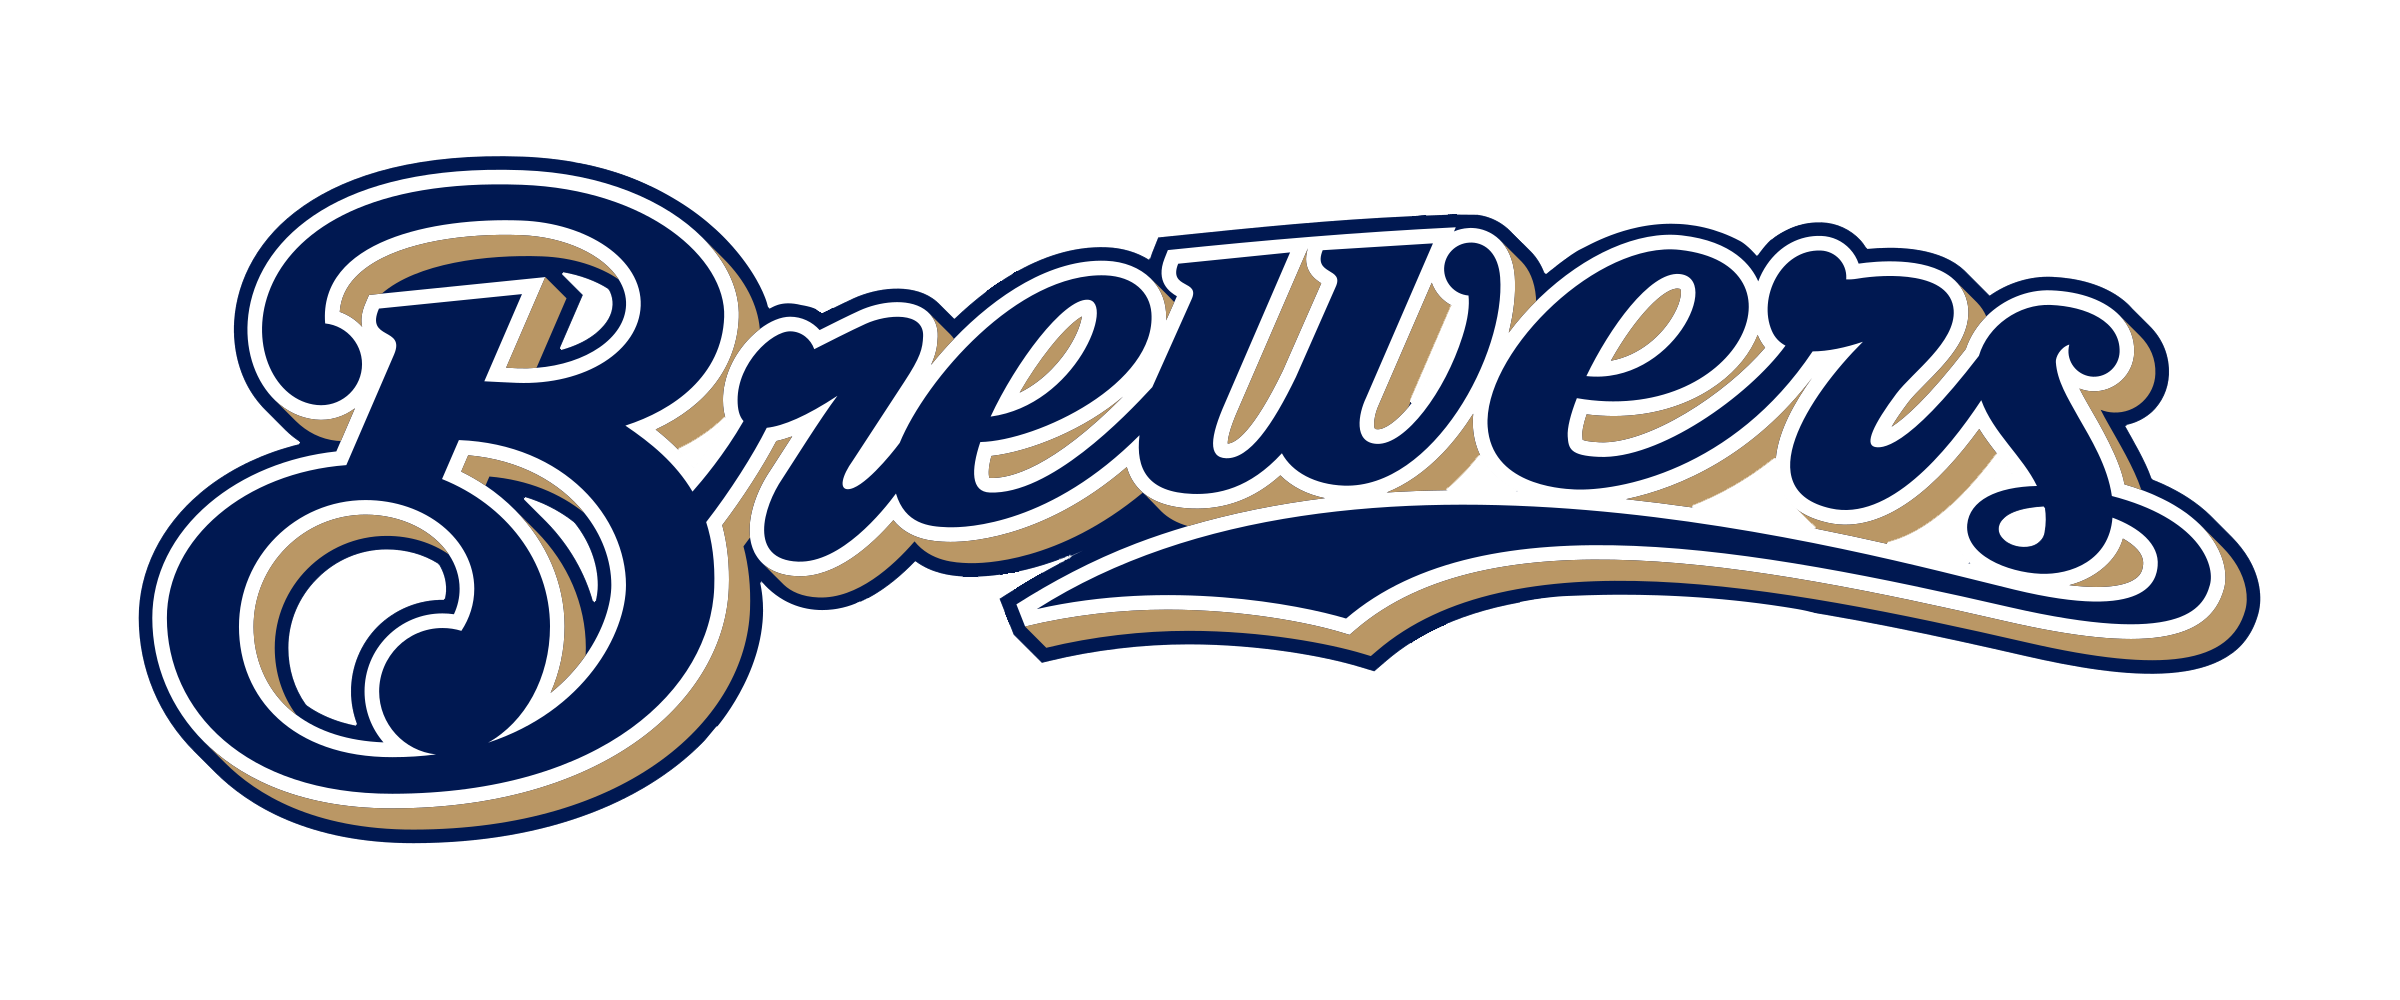 milwaukee-brewers-logo-font Brewers